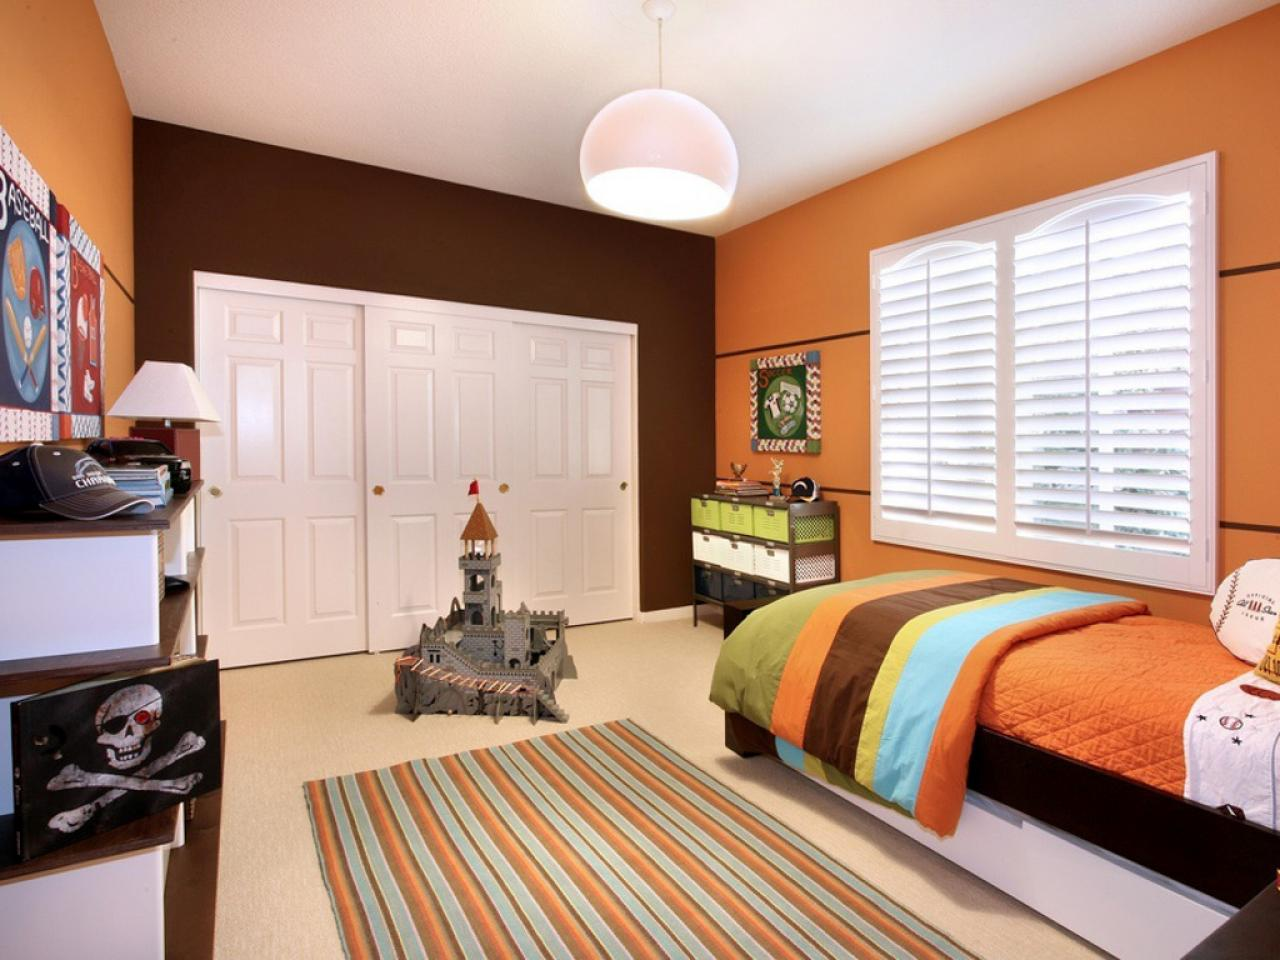 Bedroom Color Ideas - the Nuance of Choosing Tone - HomesFeed on Good Bedroom Ideas For Small Rooms  id=29142